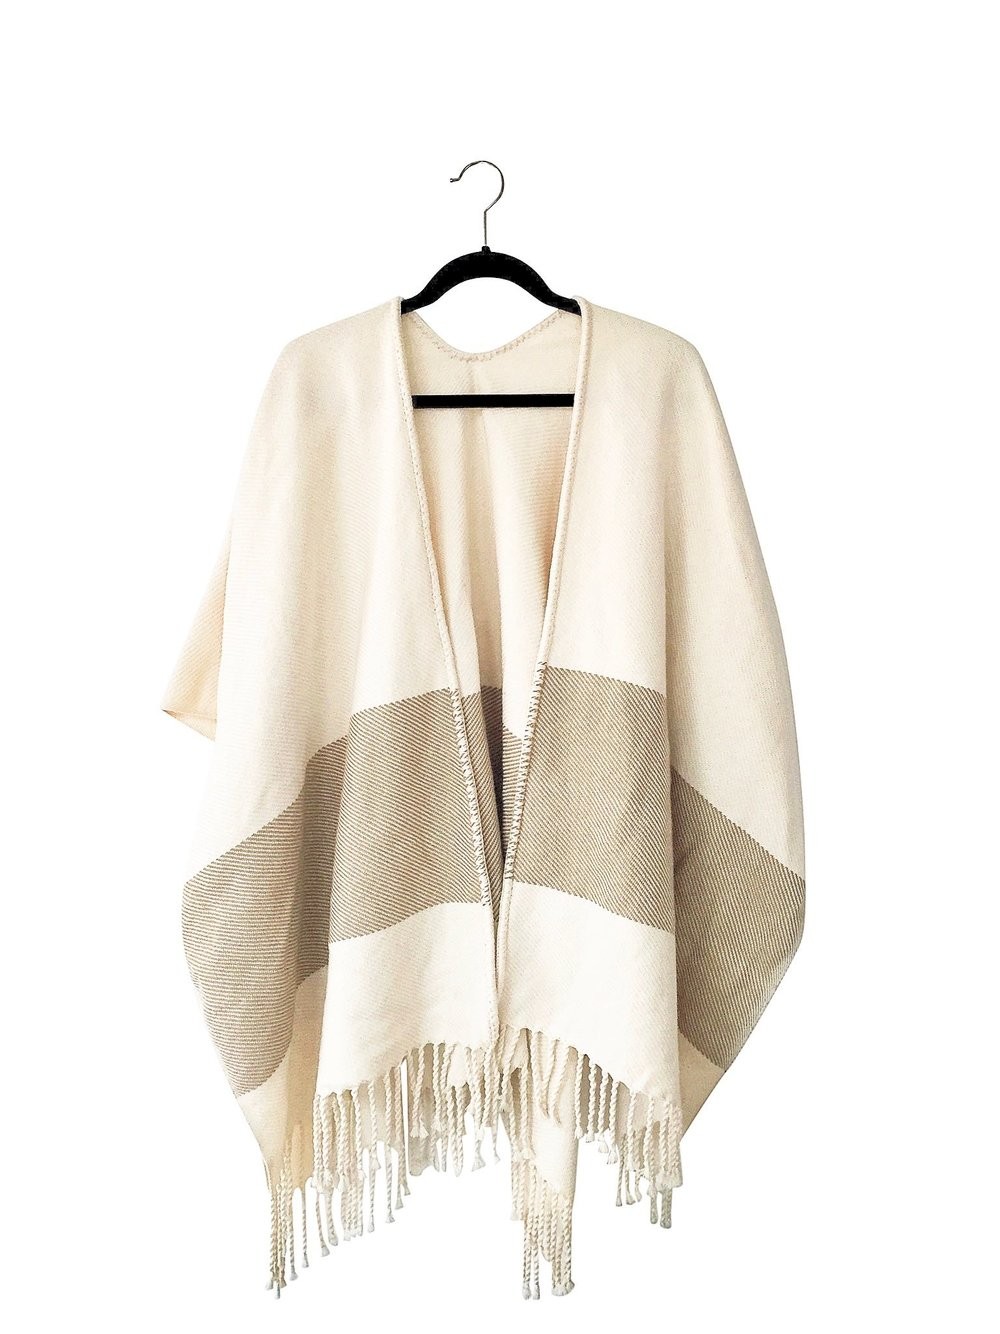 TRIGO PONCHO - Simplicity and sophistication collide when you wear the Trigo poncho. A perfect poncho for cool days of fall.